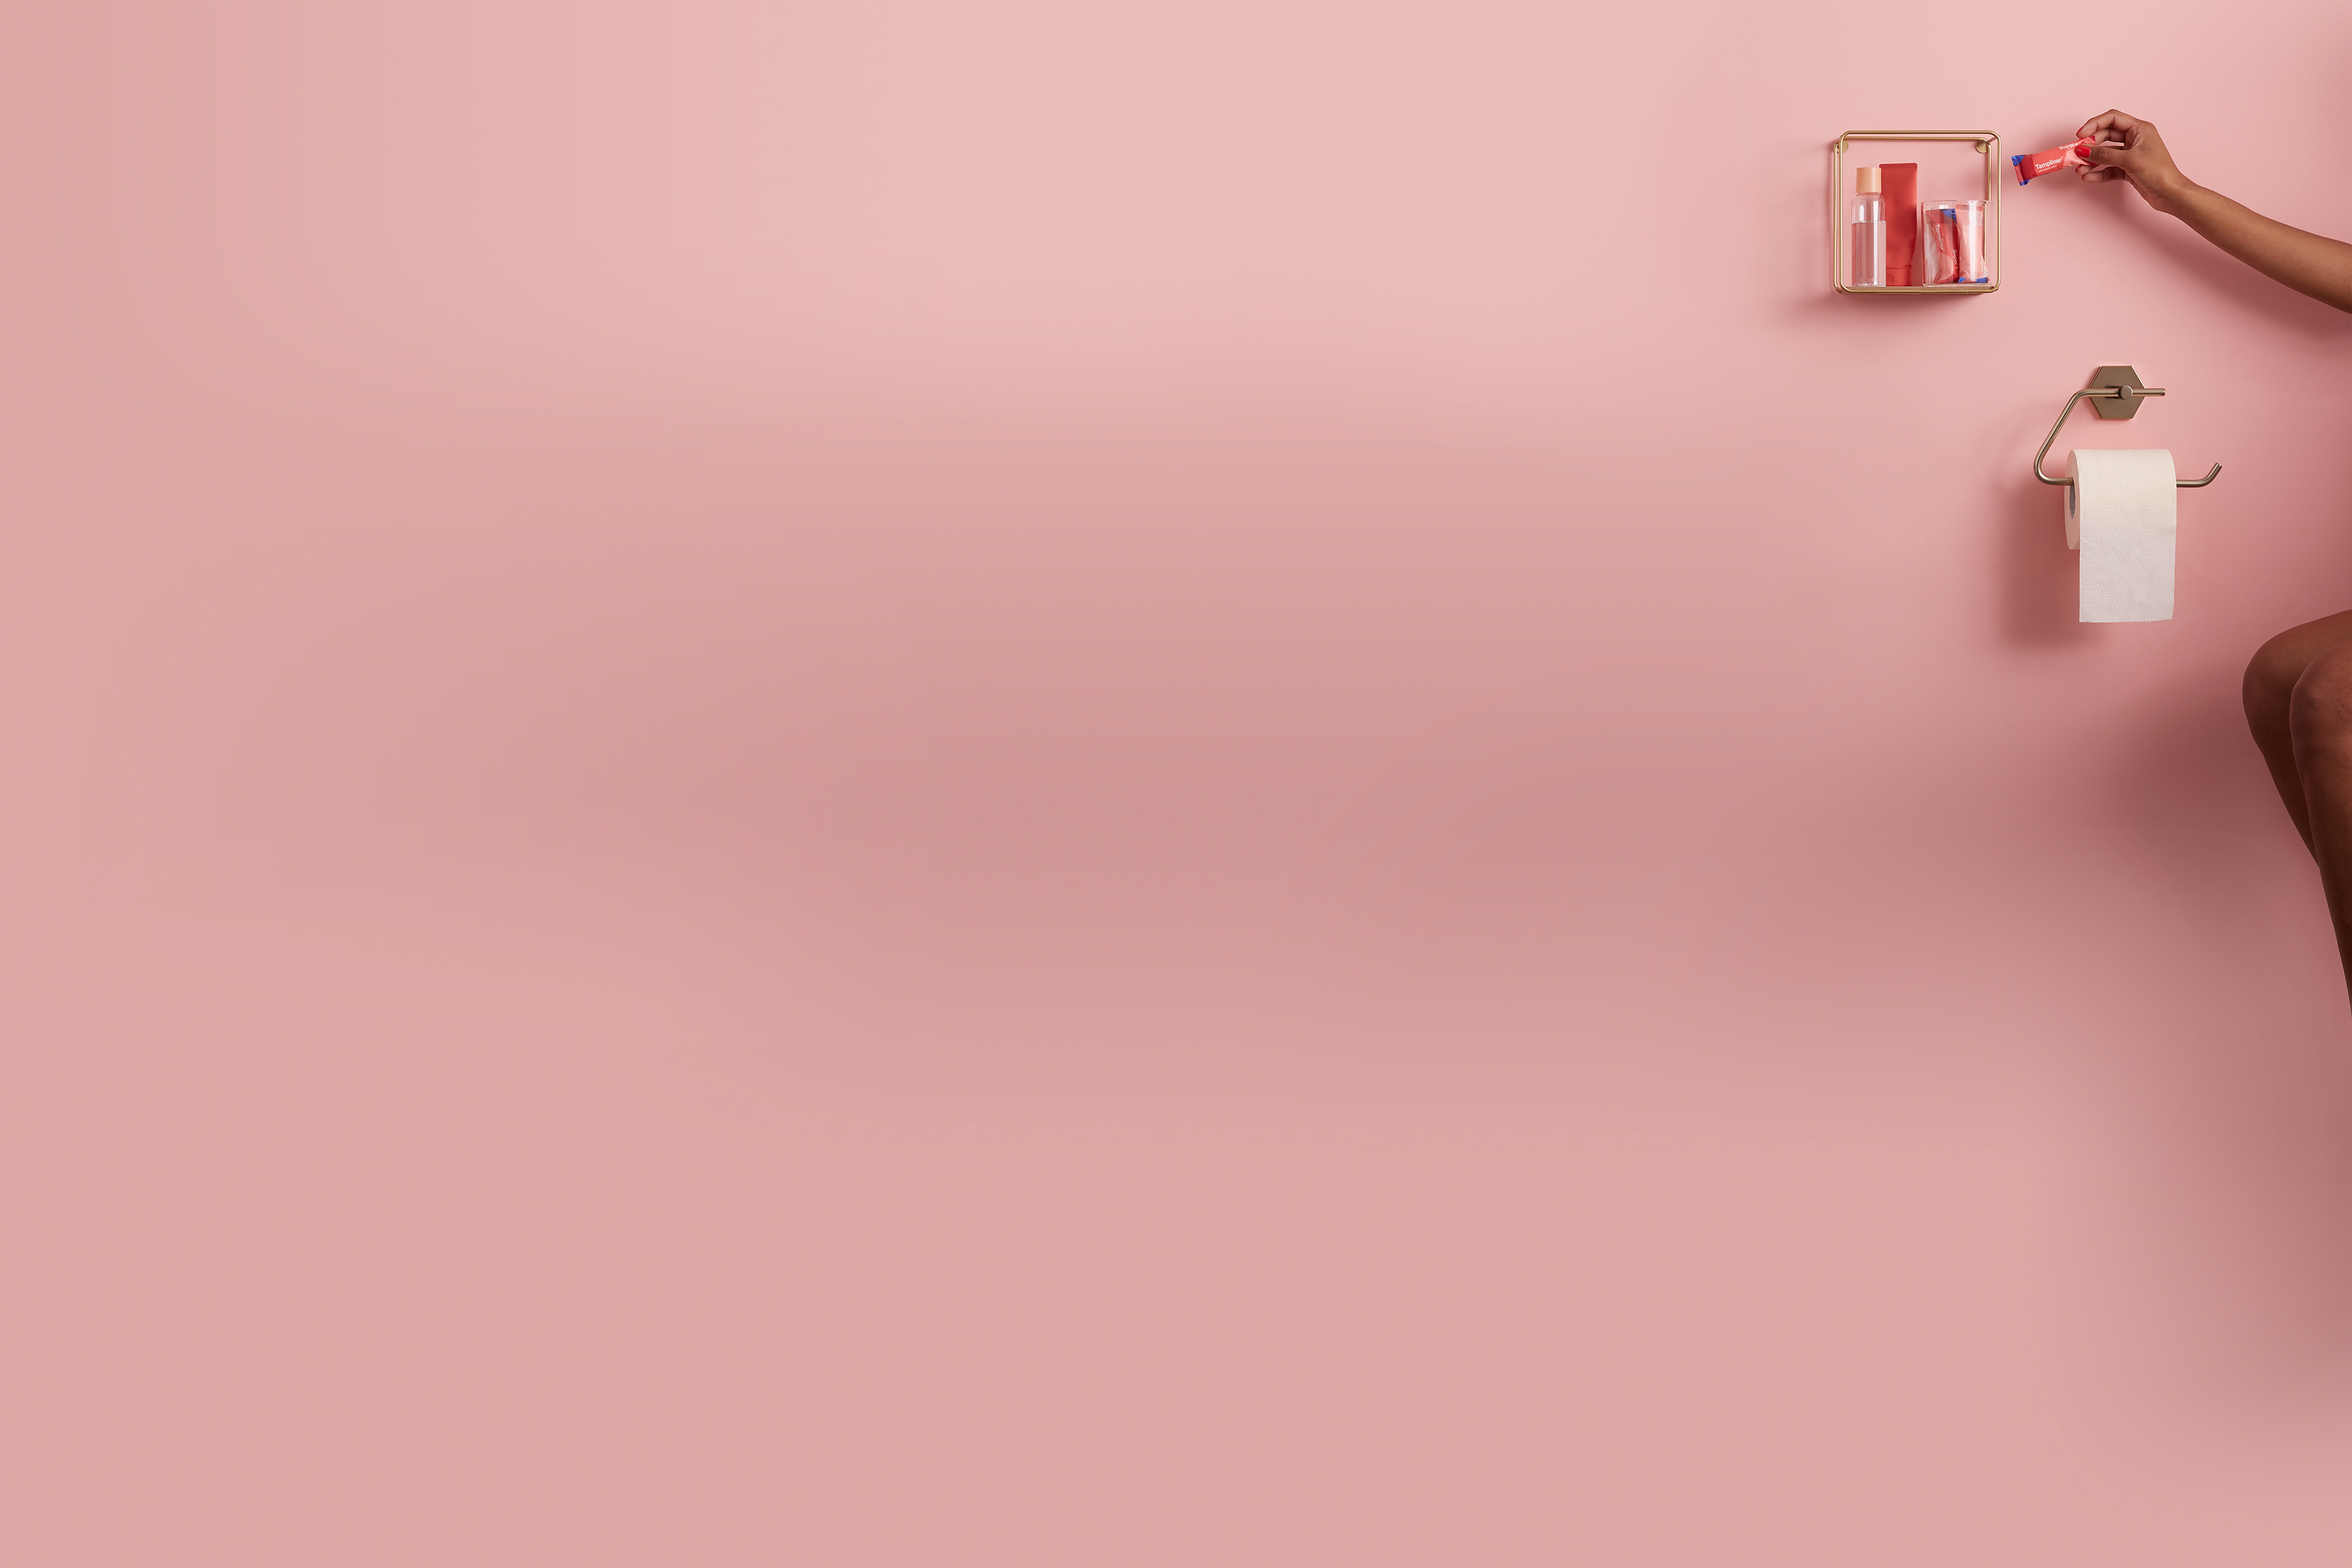 An arm reaches into a pink bathroom to remove a Callaly organic tampliner from a wooden shelf